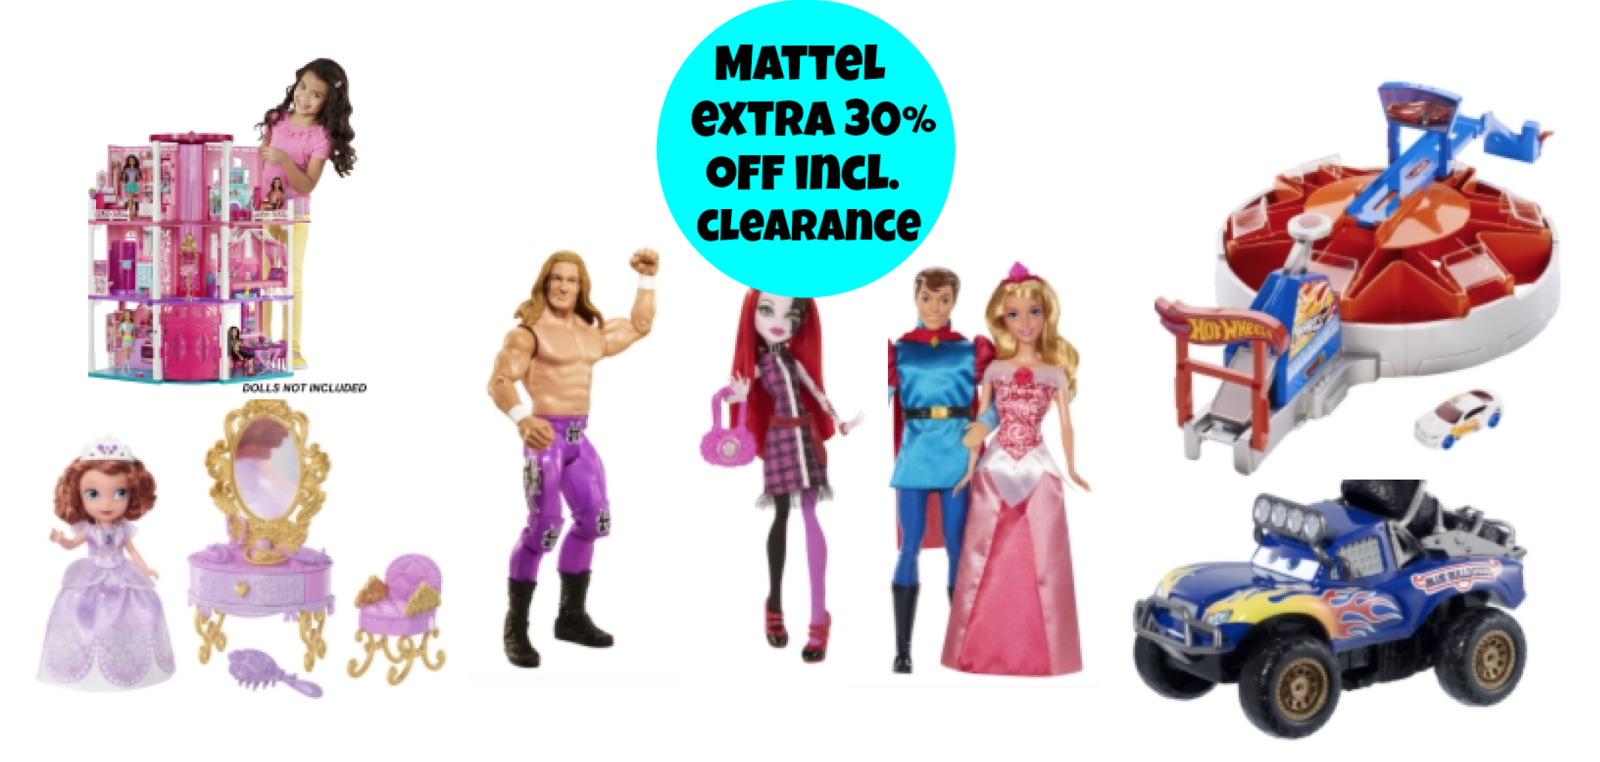 http://www.thebinderladies.com/2014/11/mattel-30-off-everything-free-shipping.html